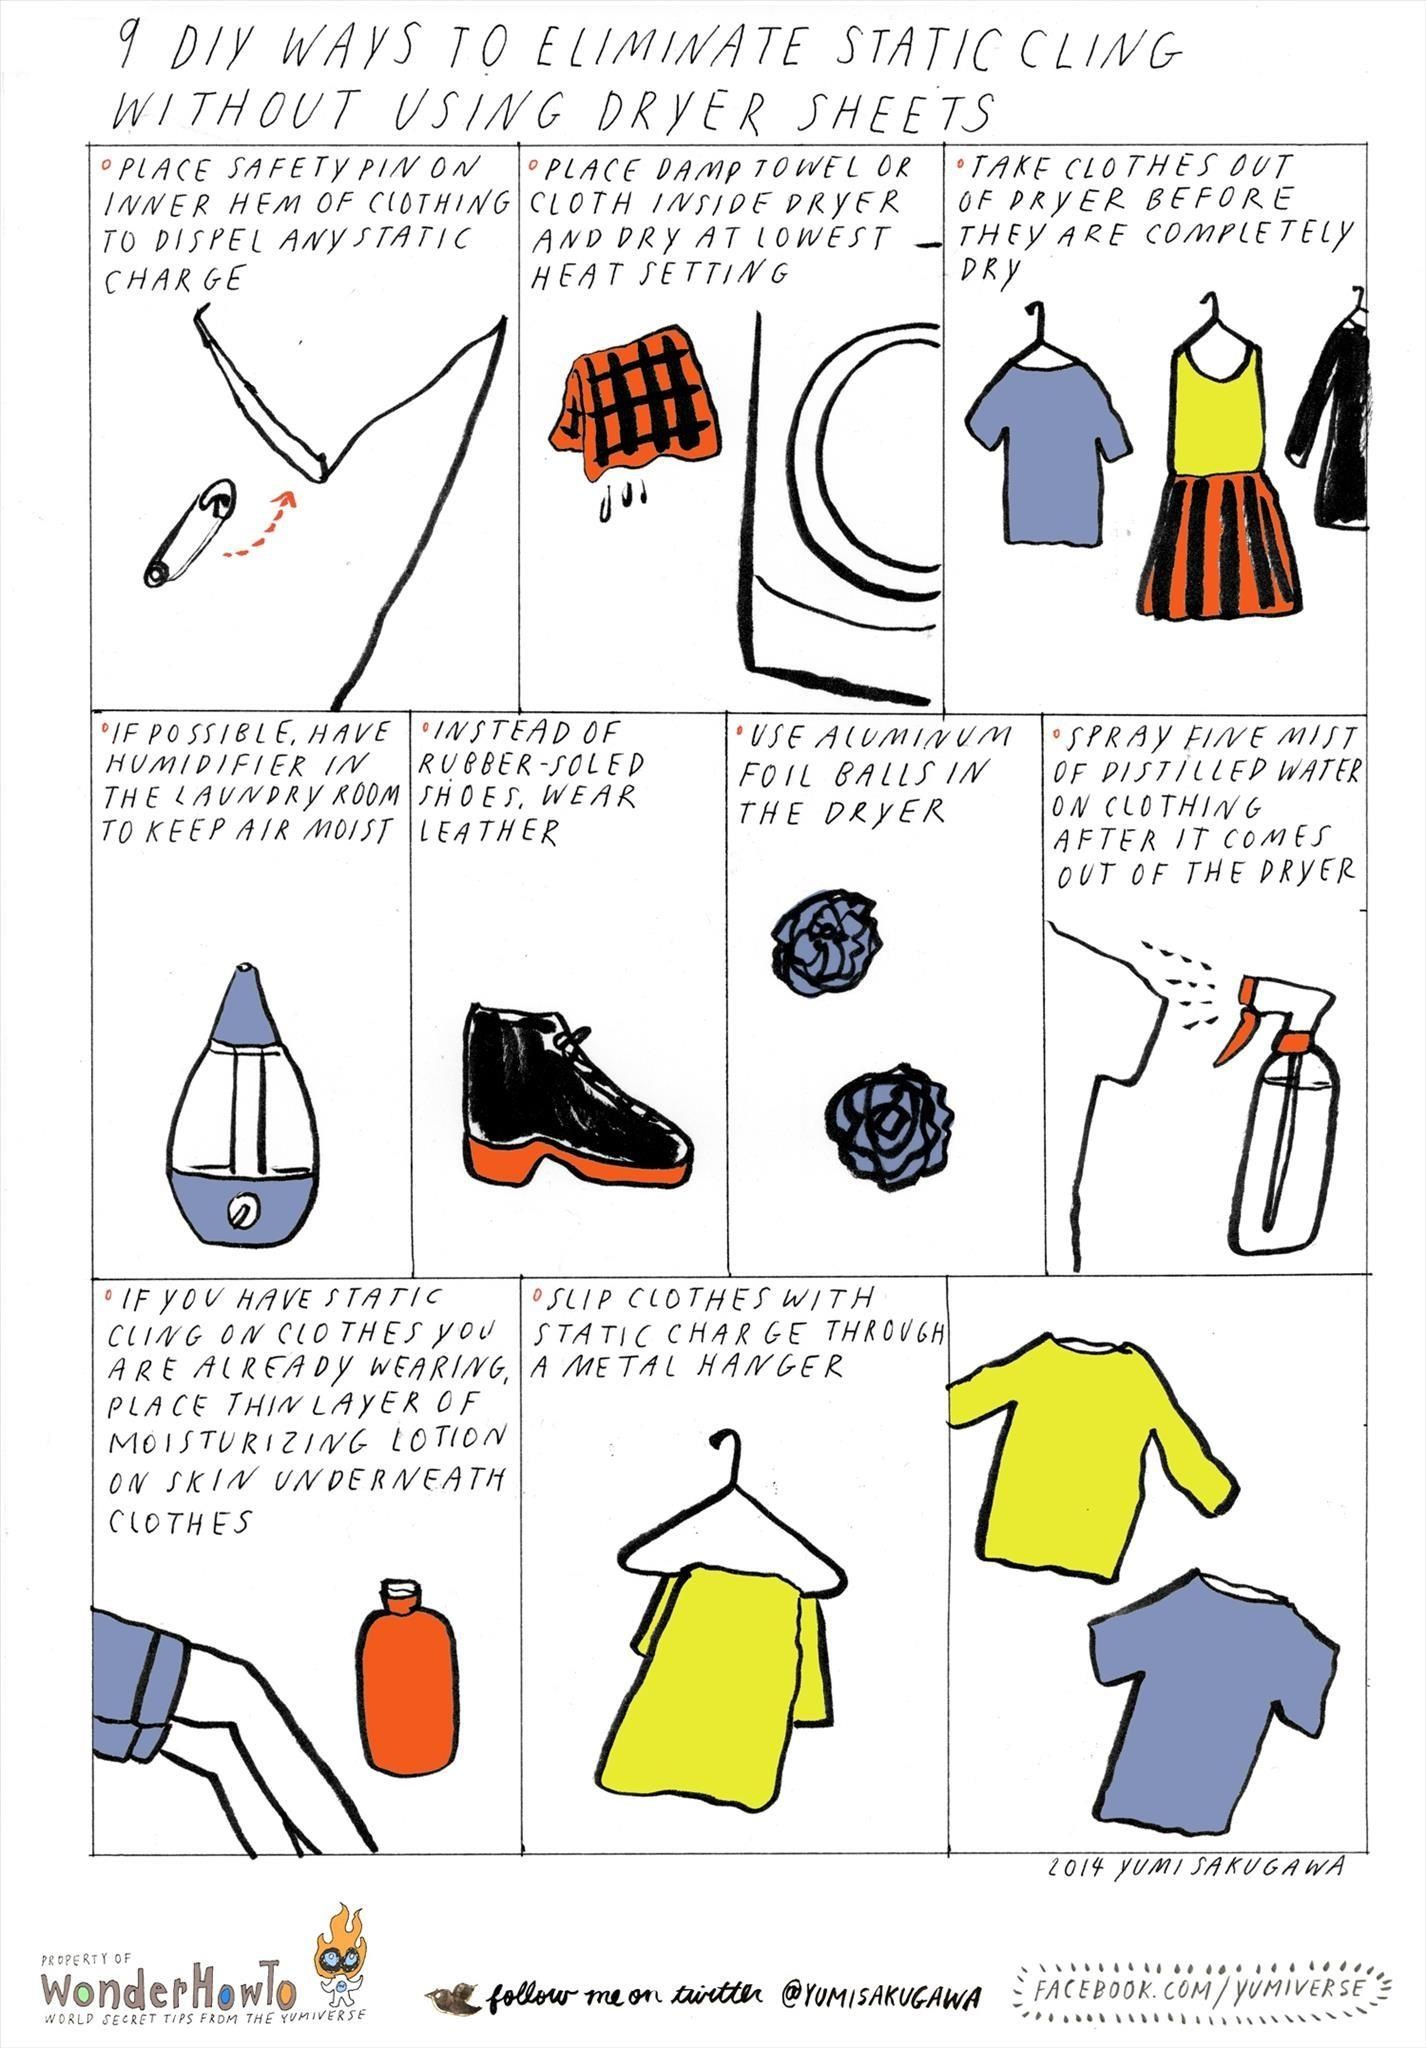 How To 9 Diy Ways To Eliminate Static Cling Without Using Dryer